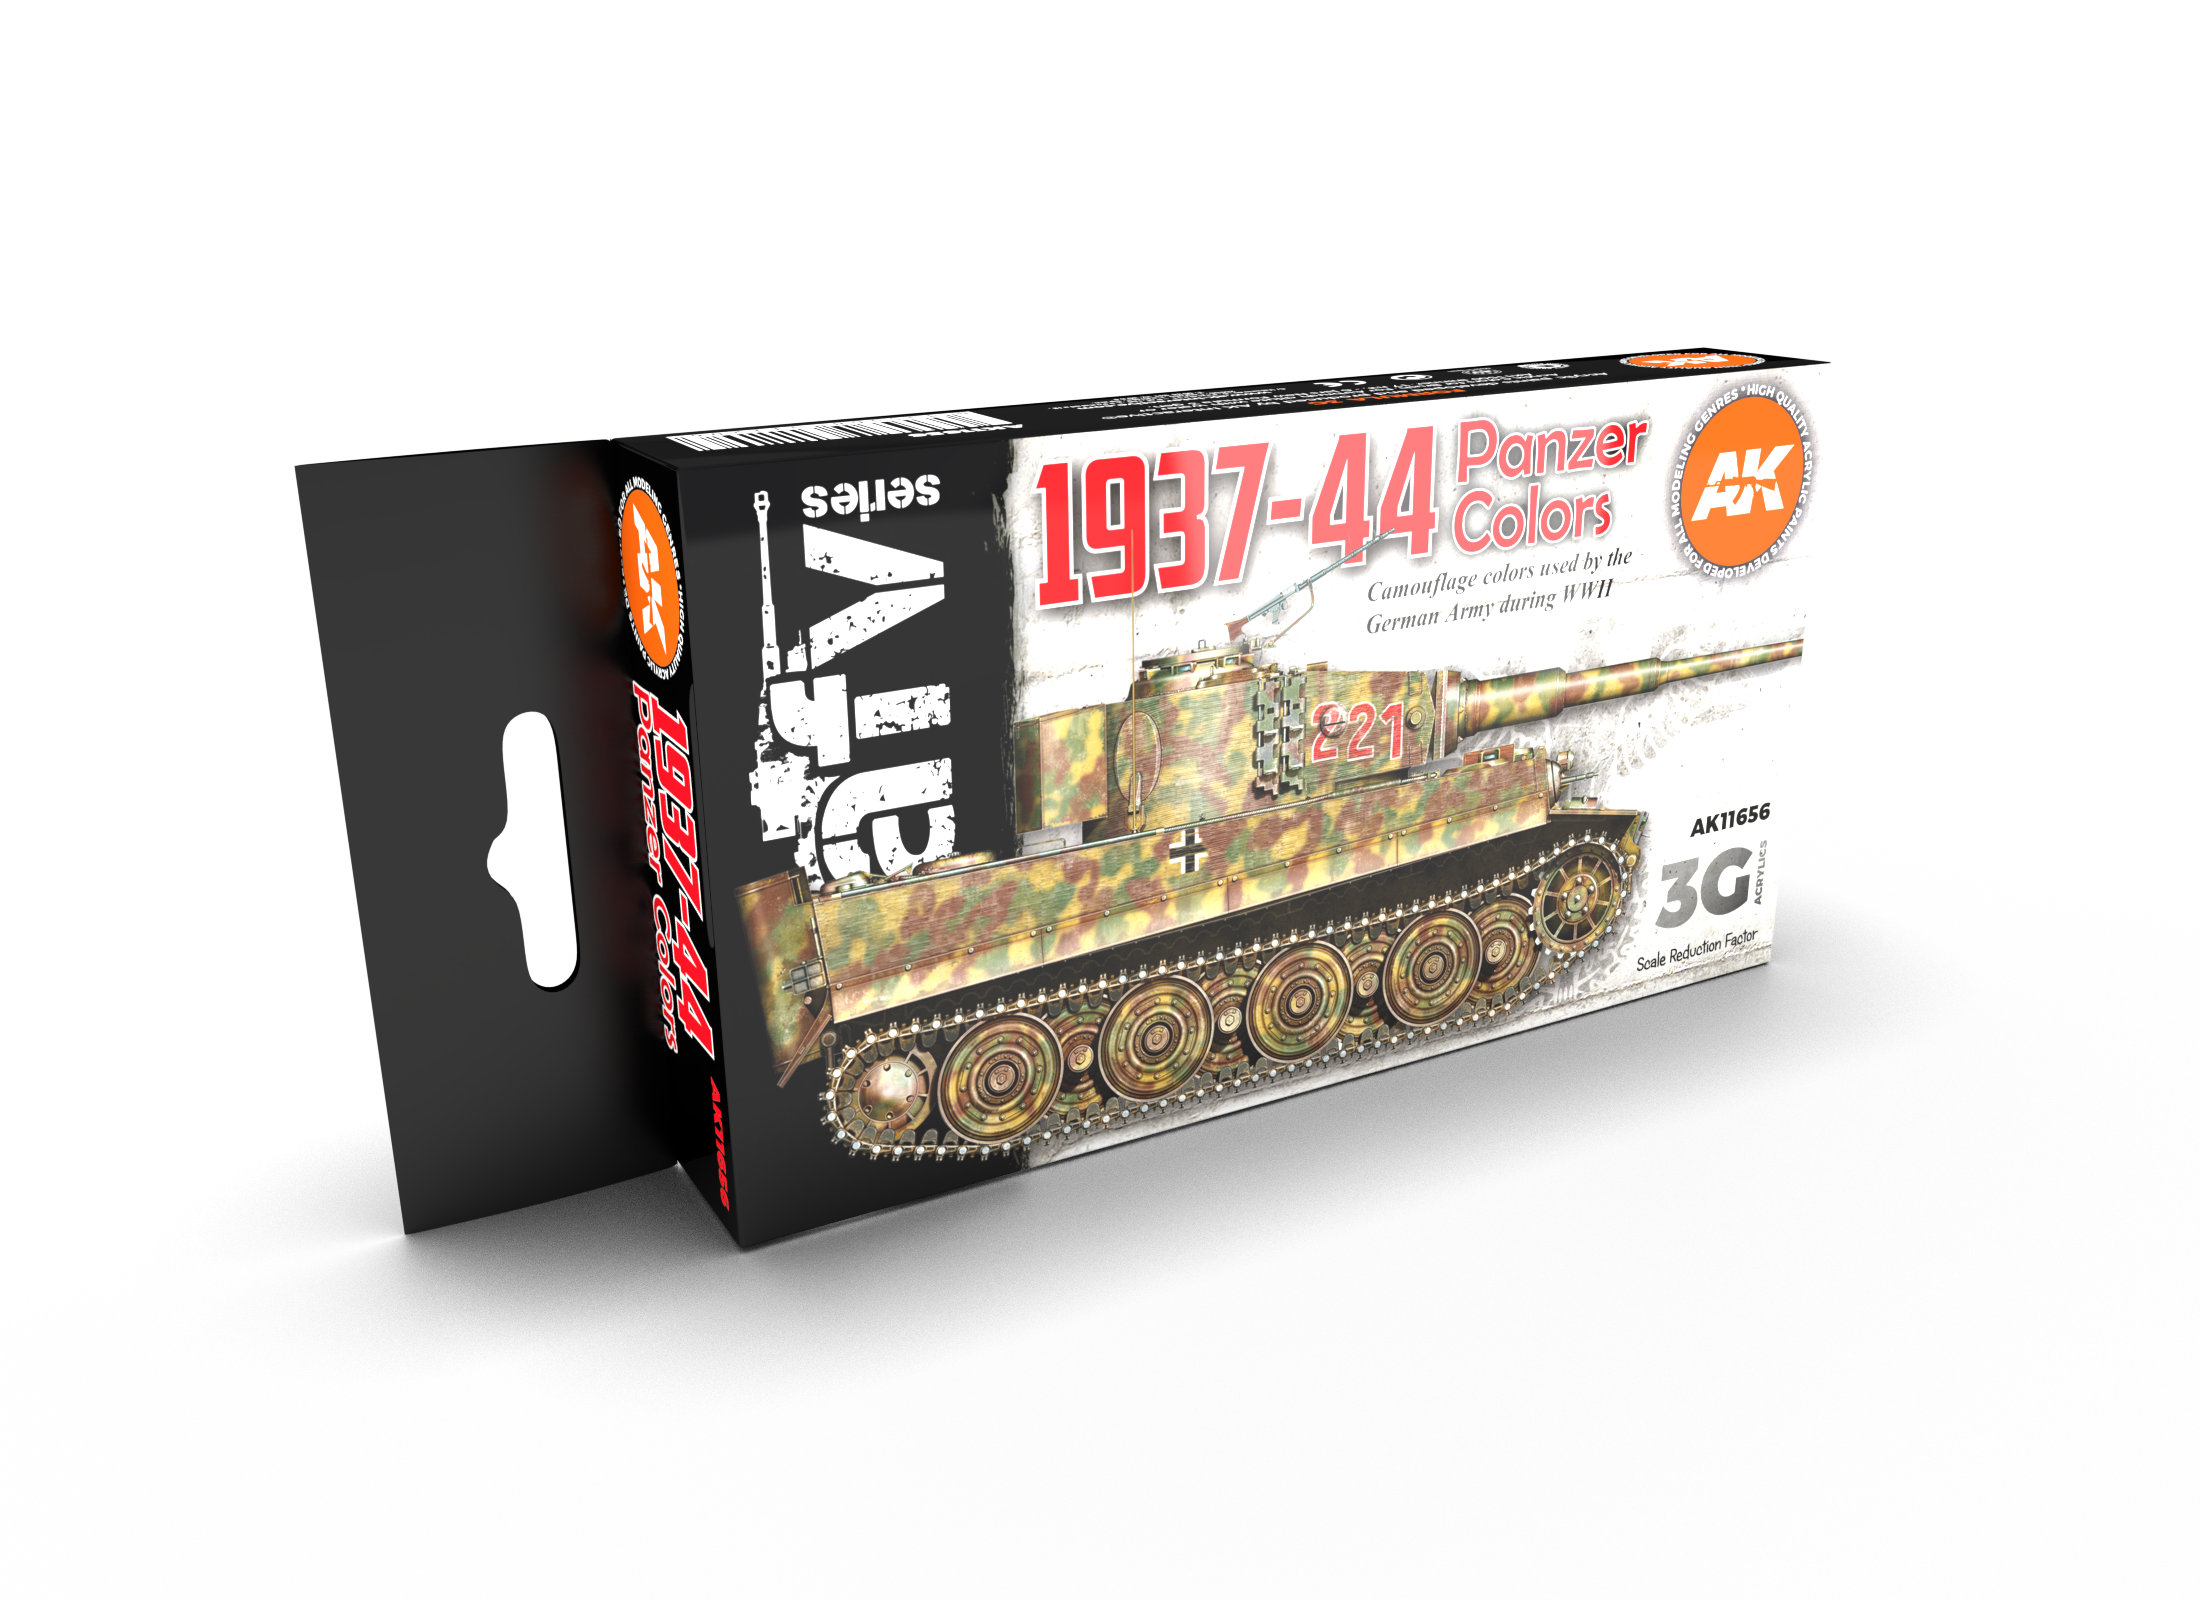 AK Interactive 3G German War Colors 37-44